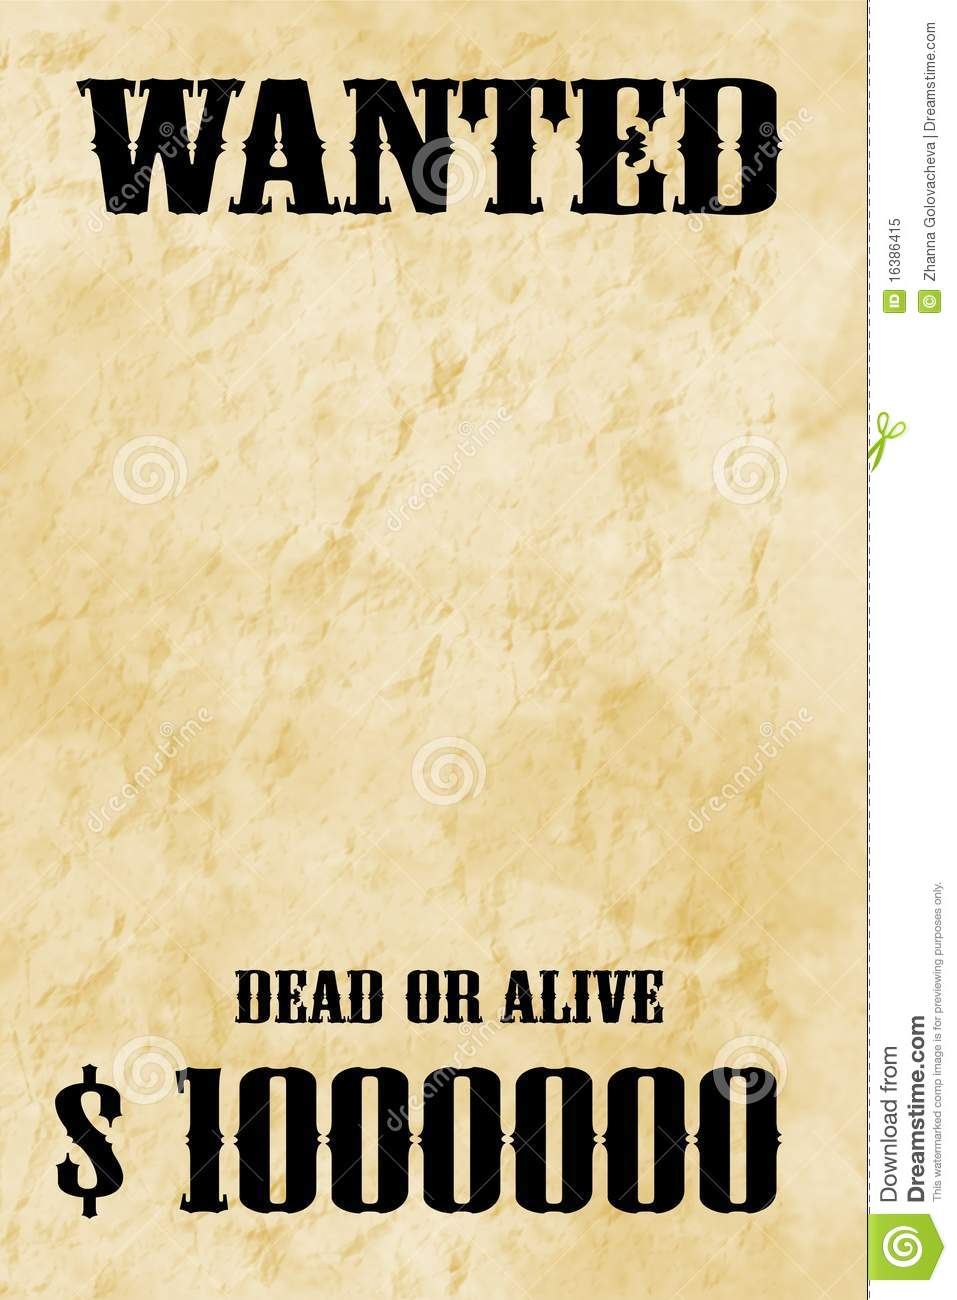 Doc450633 Most Wanted Poster Templates Doc450633 Most Wanted – Most Wanted Poster Templates